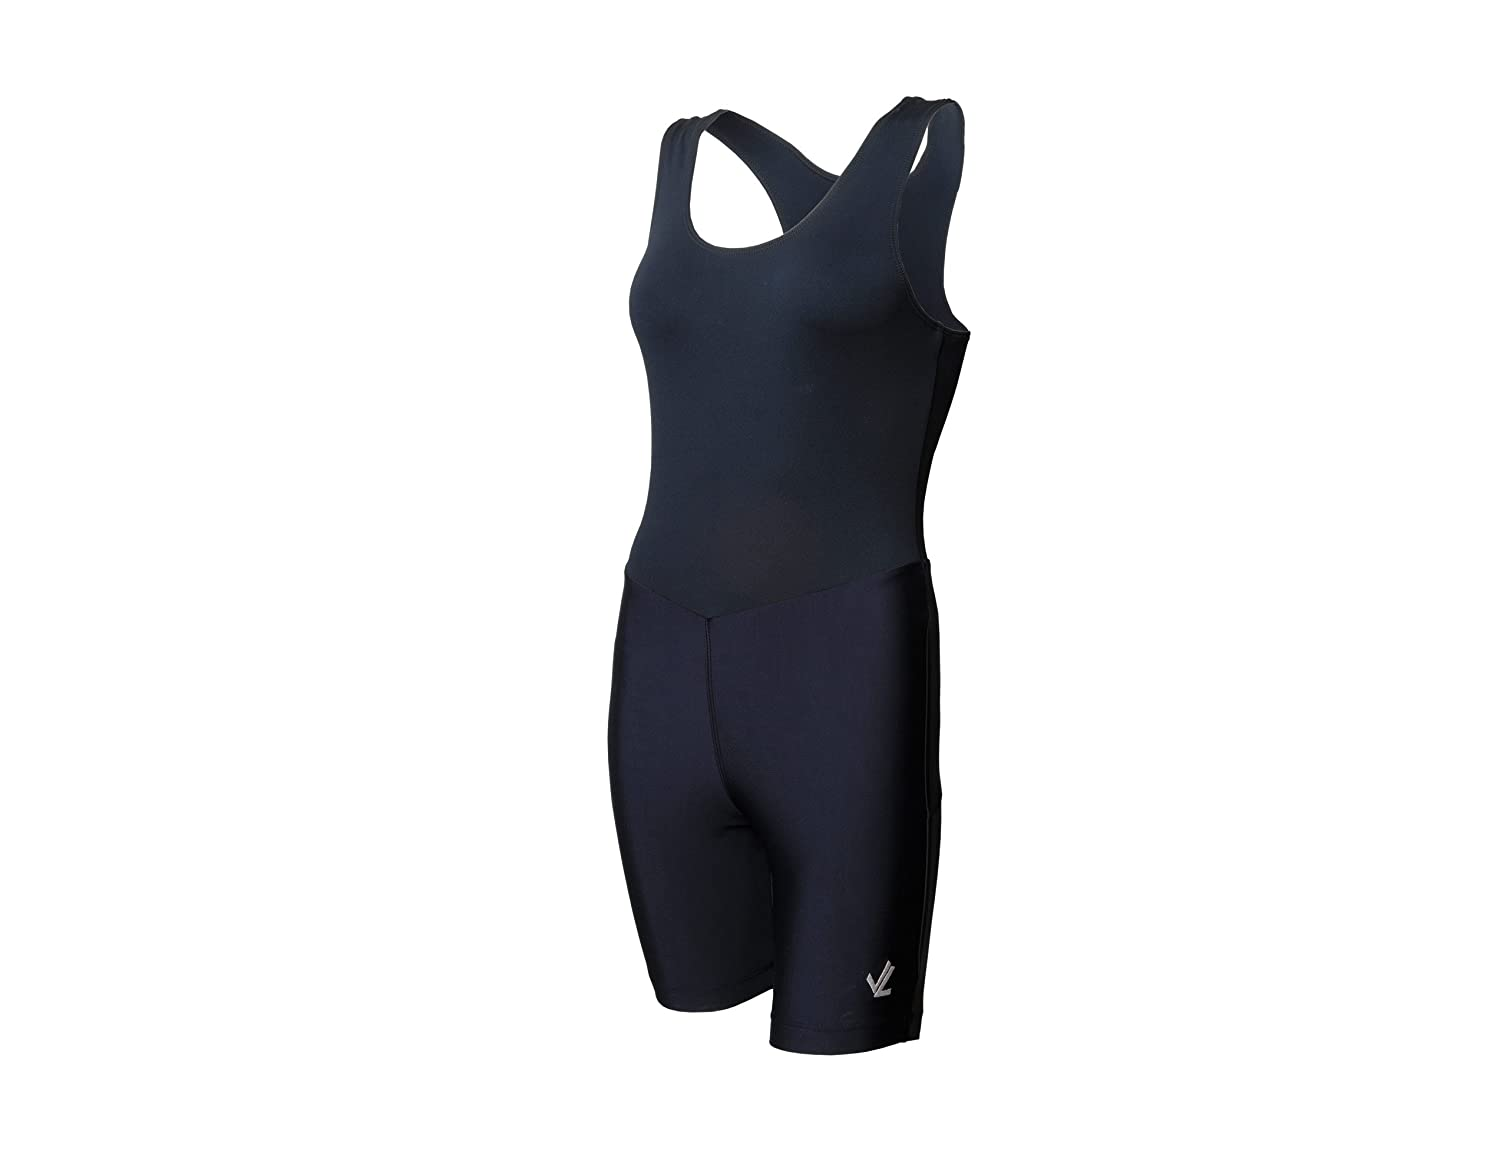 3a66c60accc630 JL Plain Women's Rowing Unisuit (Navy, Large): Amazon.co.uk: Sports &  Outdoors